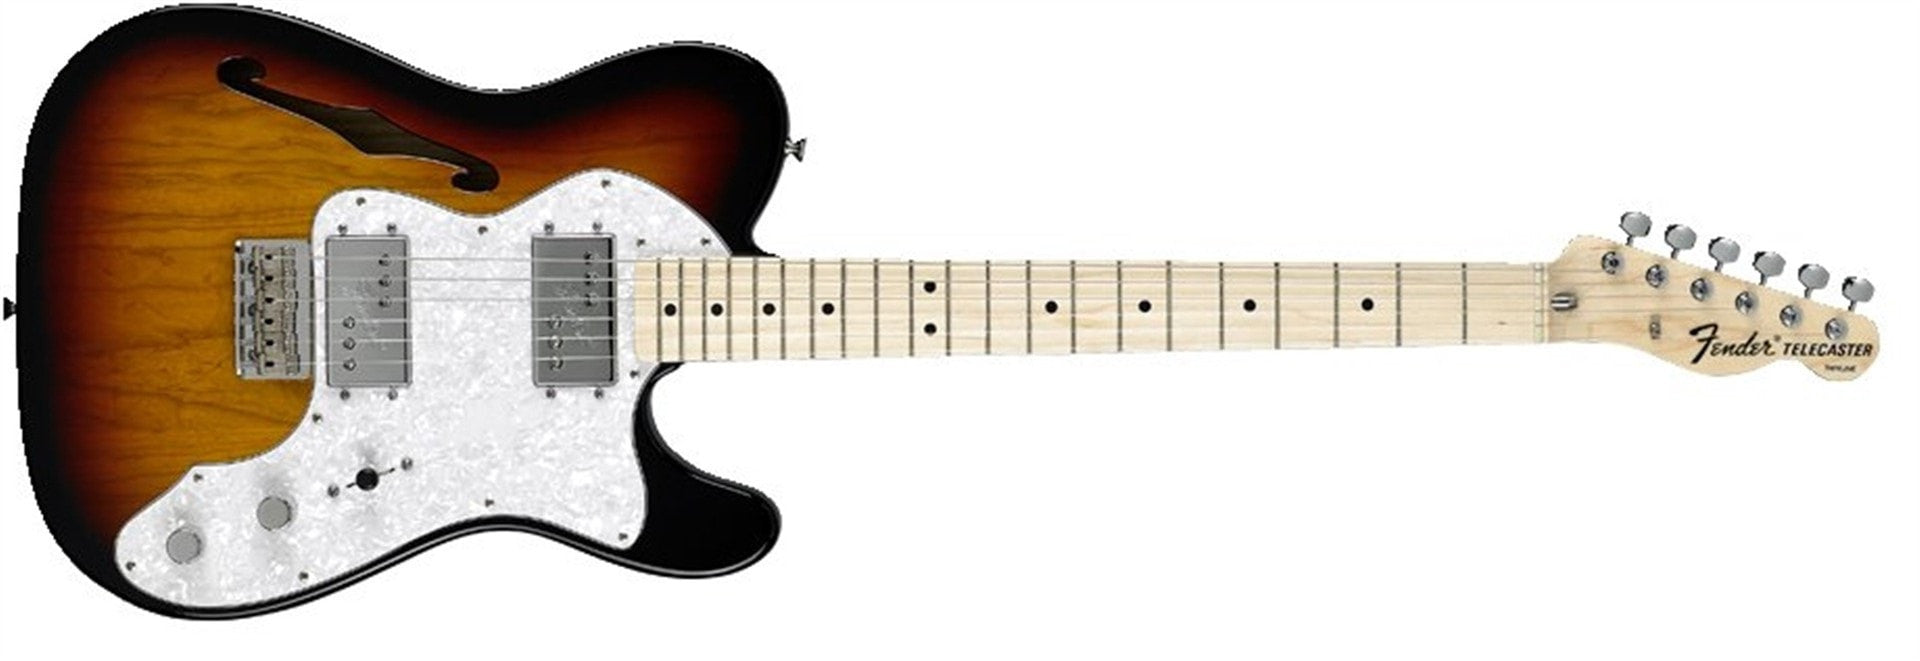 Fender Classic Series '72 Telecaster Thinline - Somerset Music